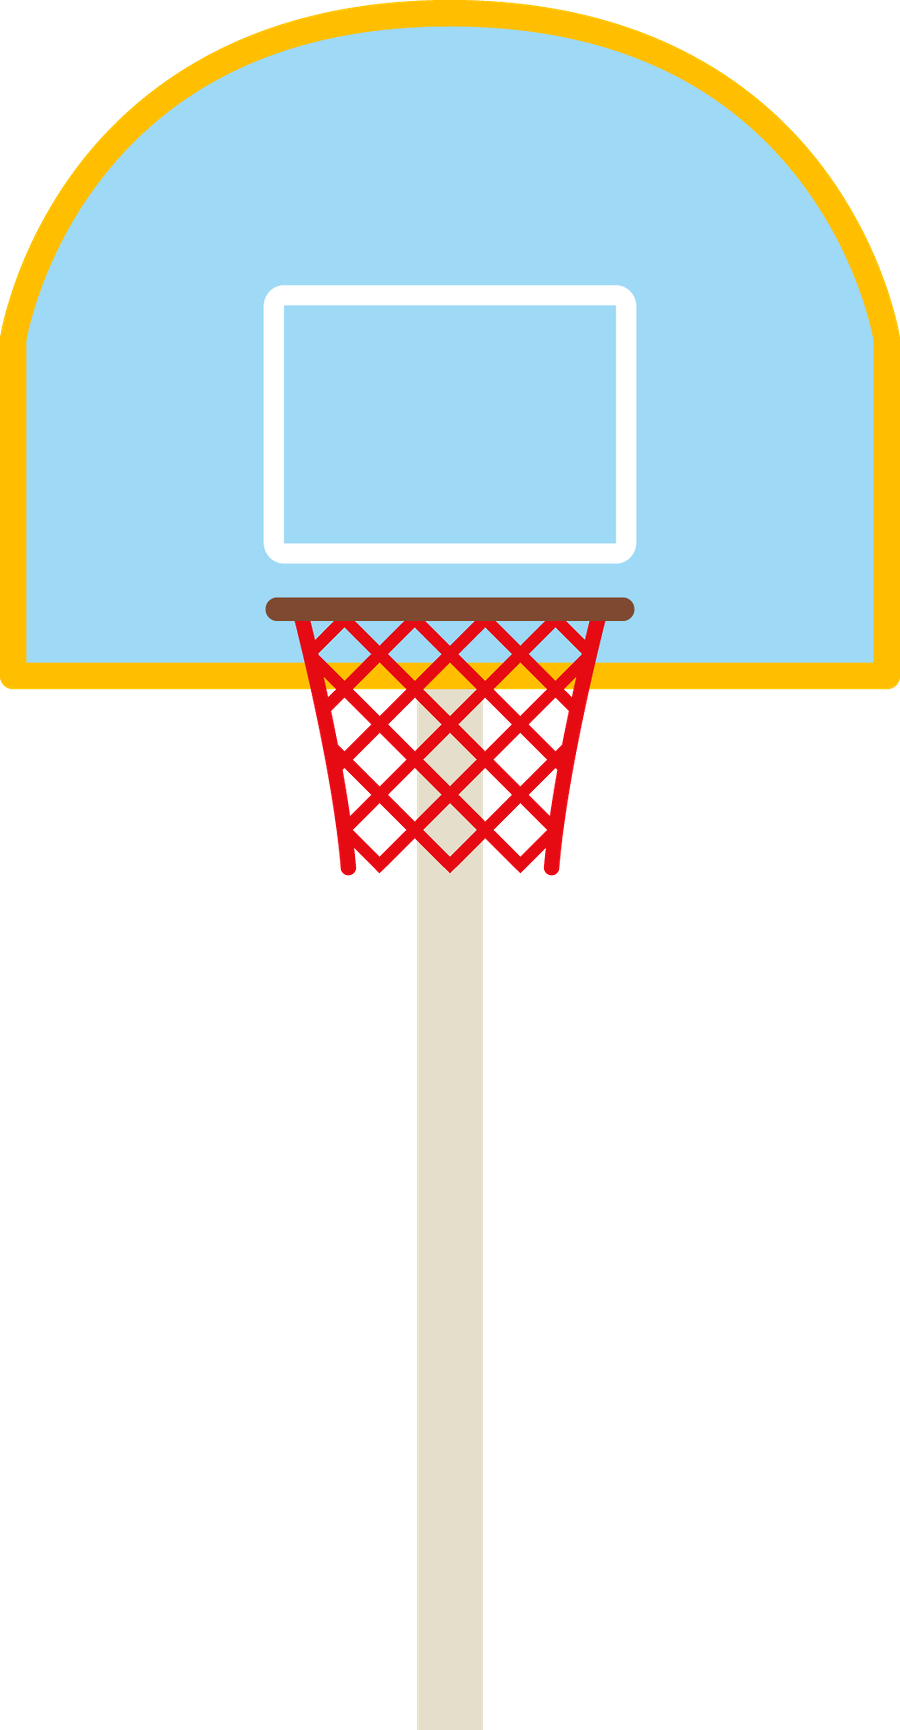 Basquete minus clip art. Weight clipart heavy object